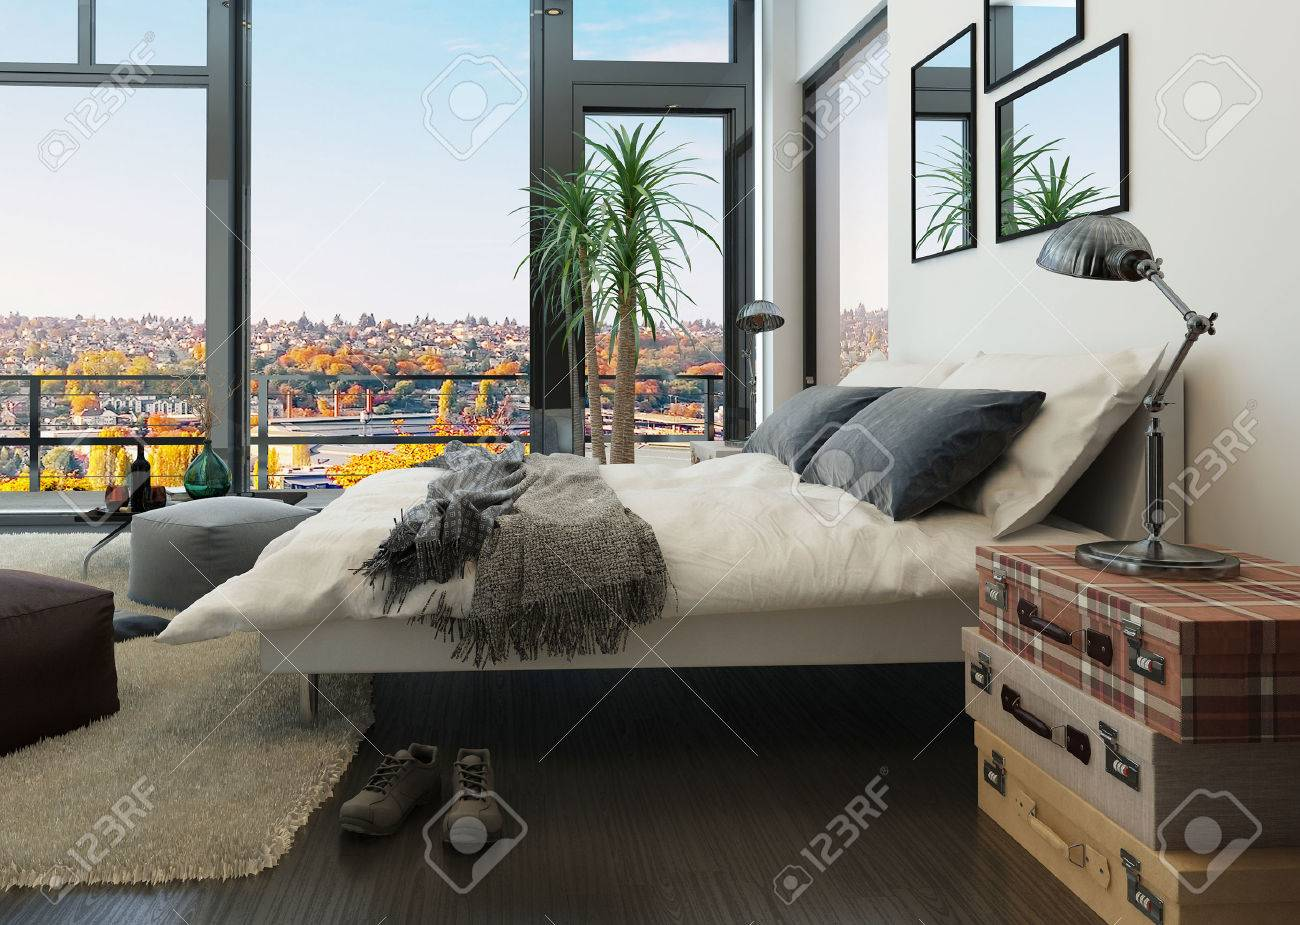 Modern Bedroom Interior With Vintage Furniture Stock Photo Picture